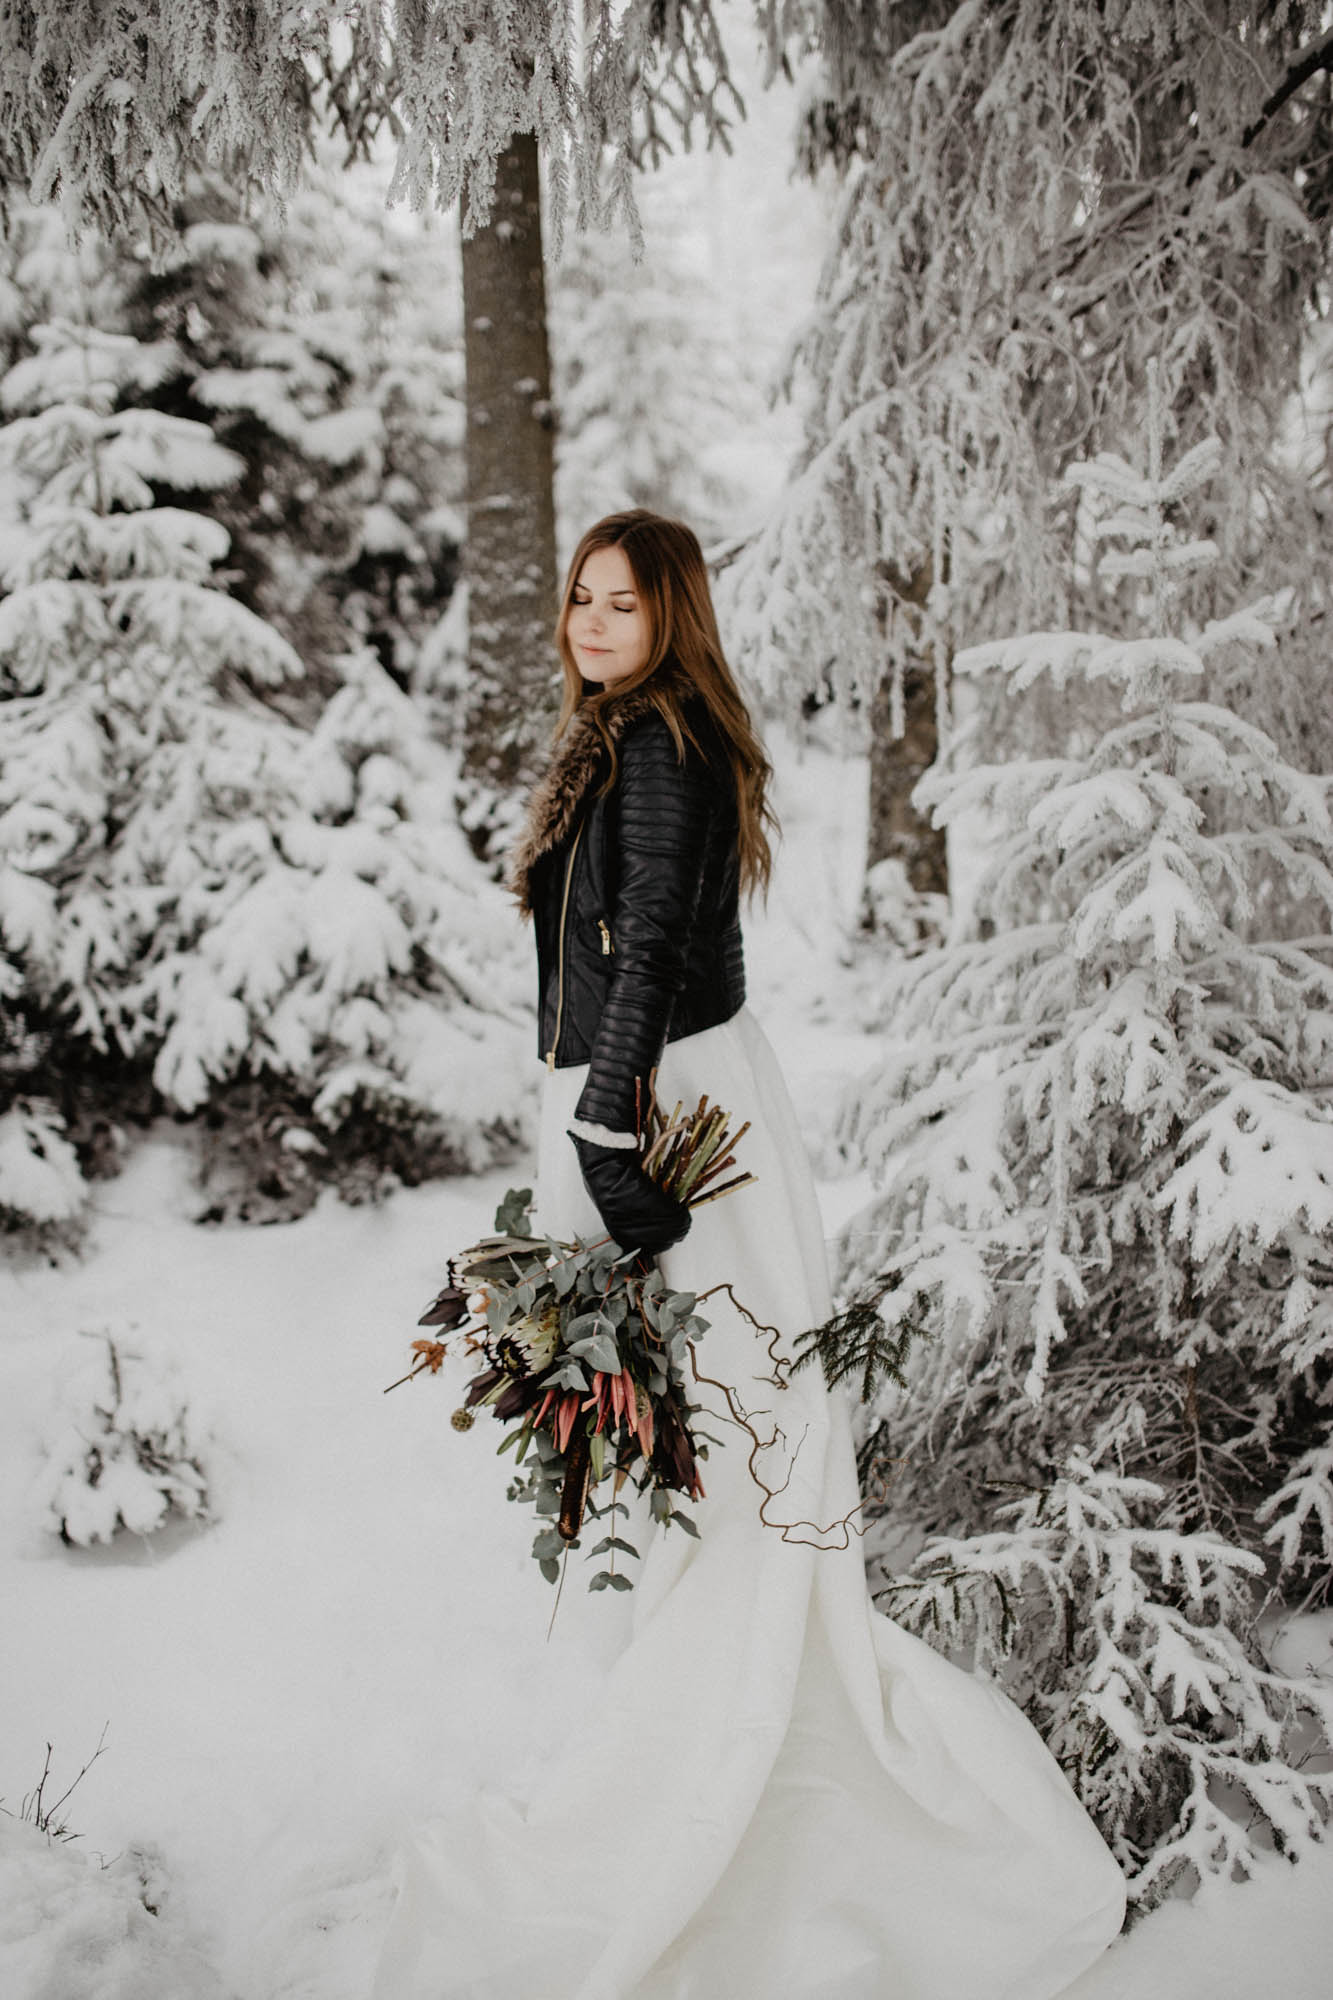 ashley_schulman_photography-winter_wedding_tampere-36.jpg